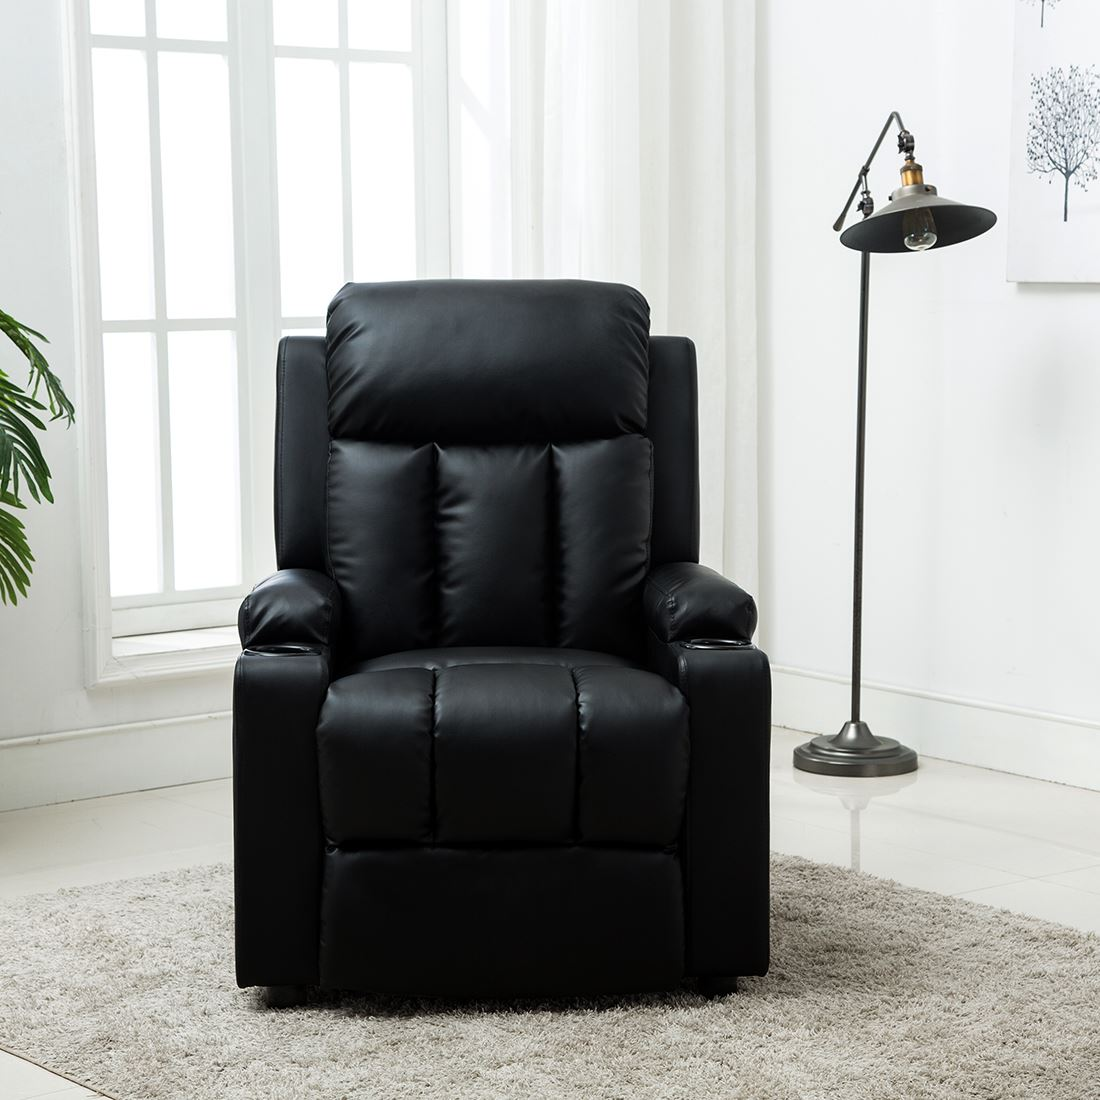 STUDIO-LEATHER-RECLINER-w-DRINK-HOLDERS-ARMCHAIR-SOFA-CHAIR-CINEMA-GAMING thumbnail 3